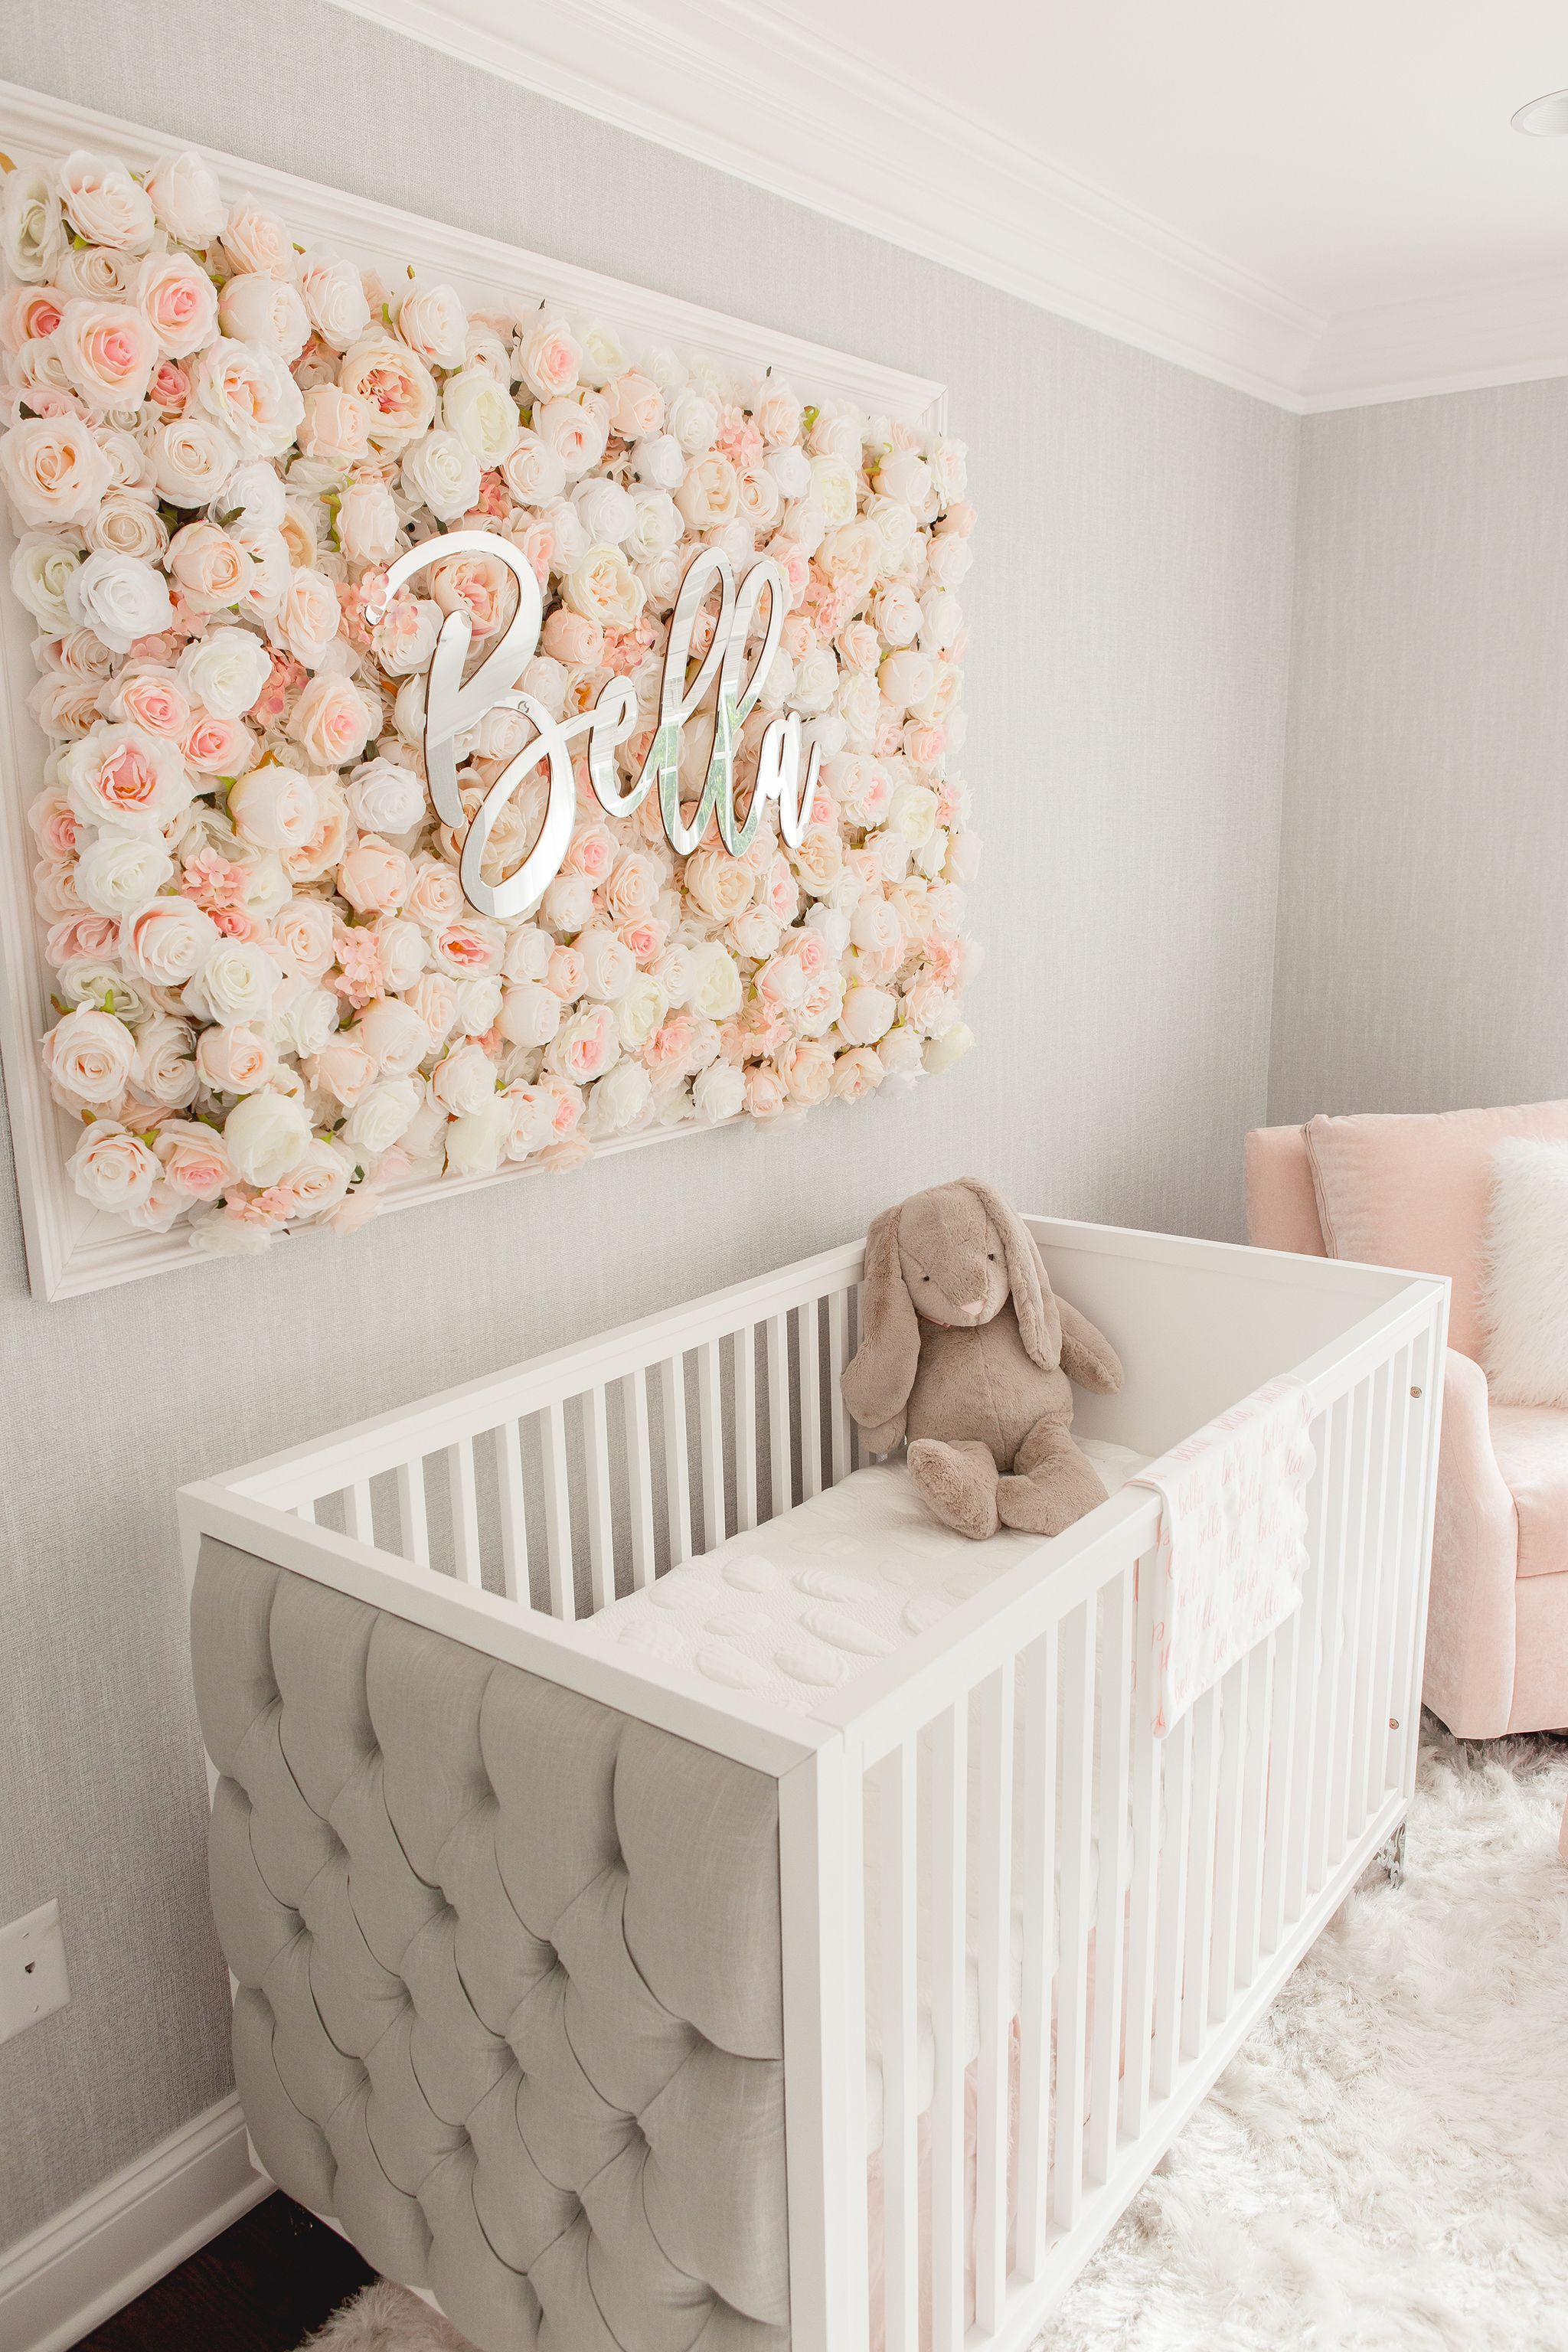 Baby Girl Nursery Wall Decor Ideas Guess Which Celebrity Nursery Inspired this Gorgeous Space - Project Nursery